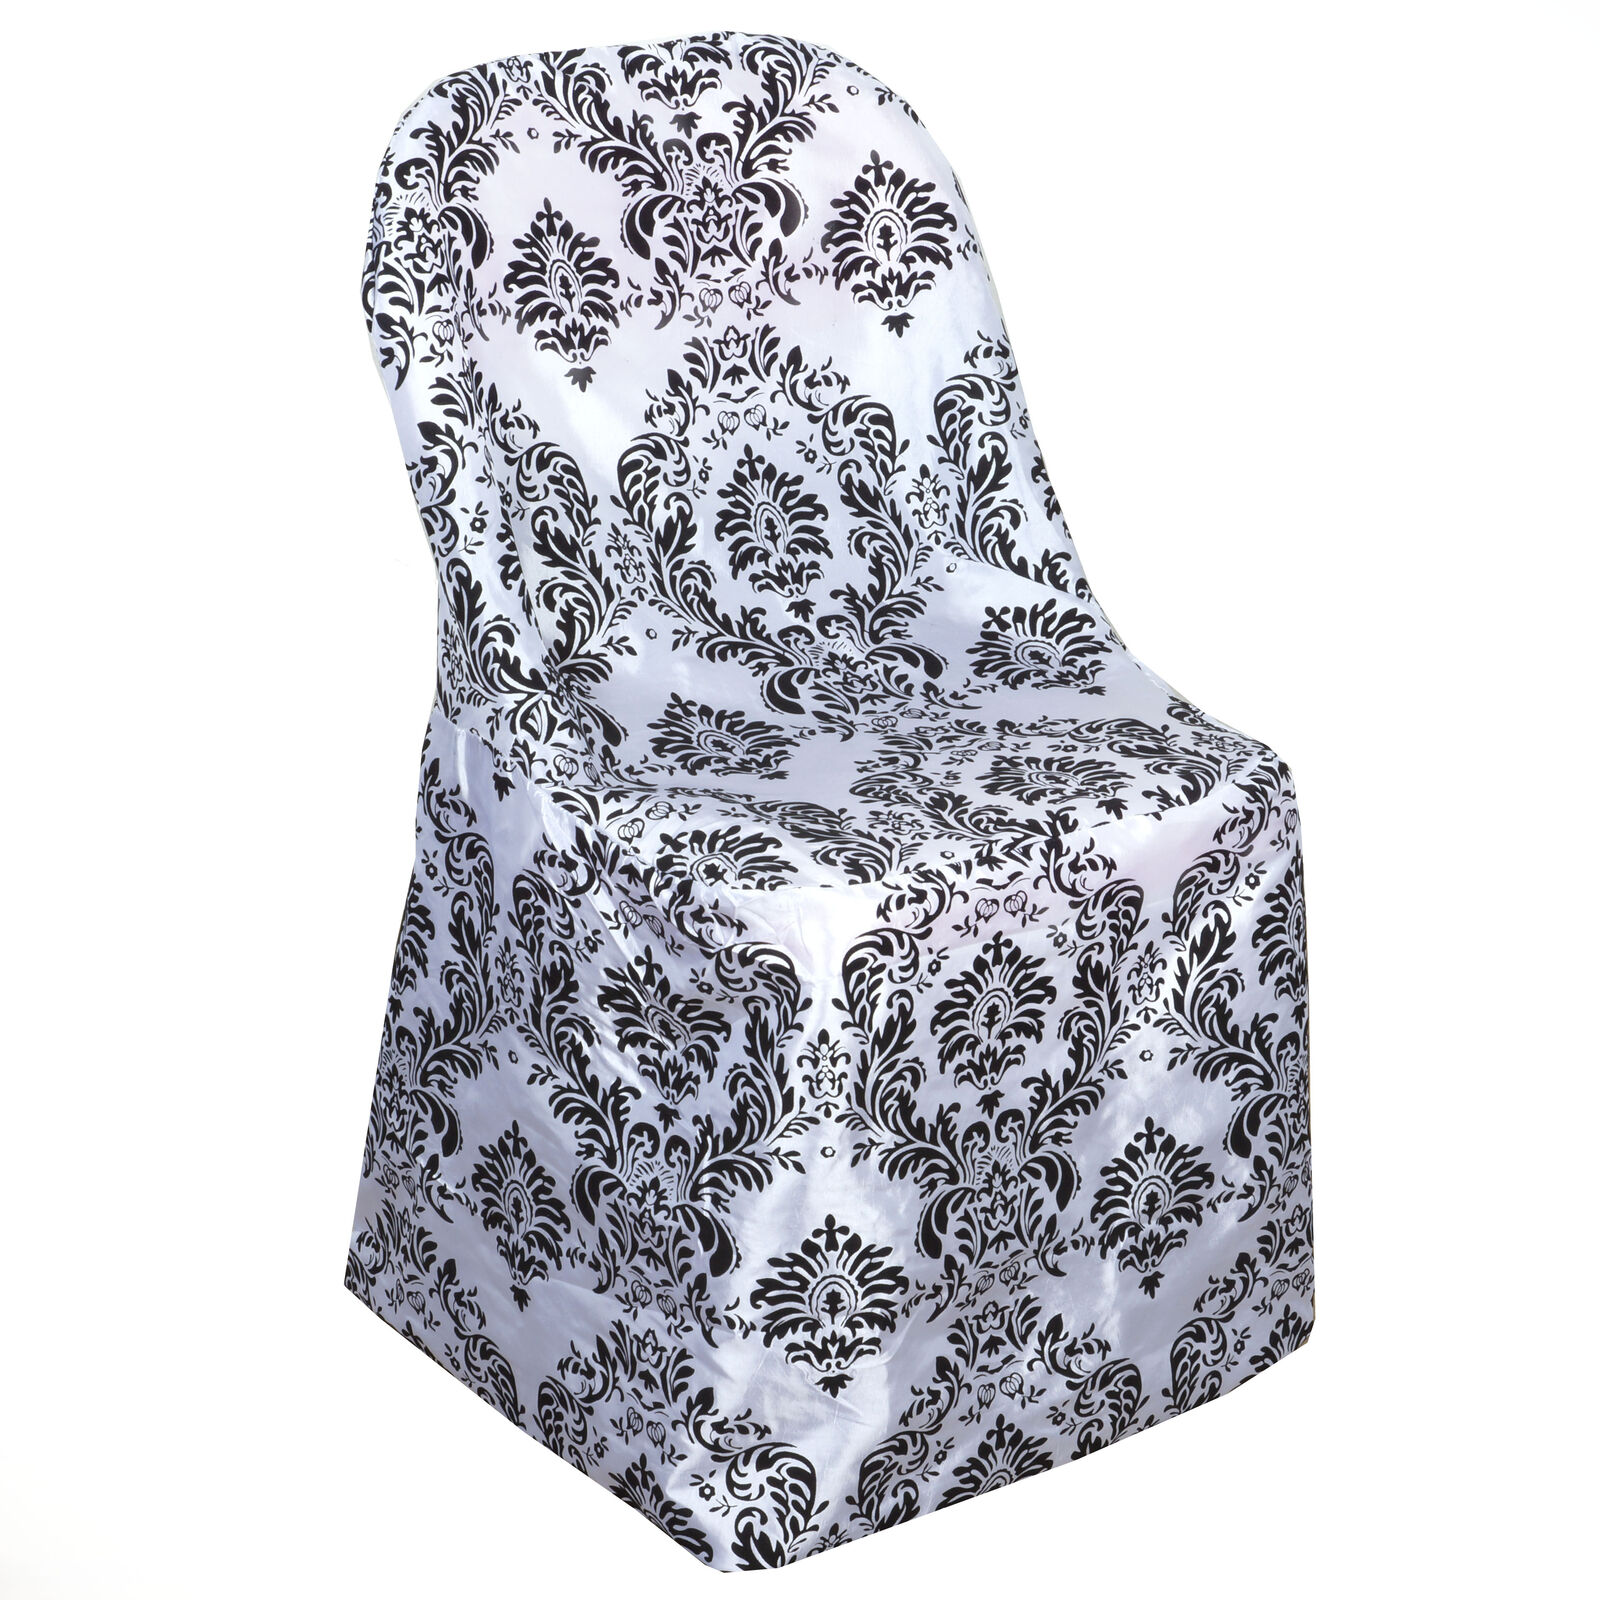 10 Black White Folding Chair Covers Damask Wedding Decor Event Banquet Supplies For Sale Online Ebay